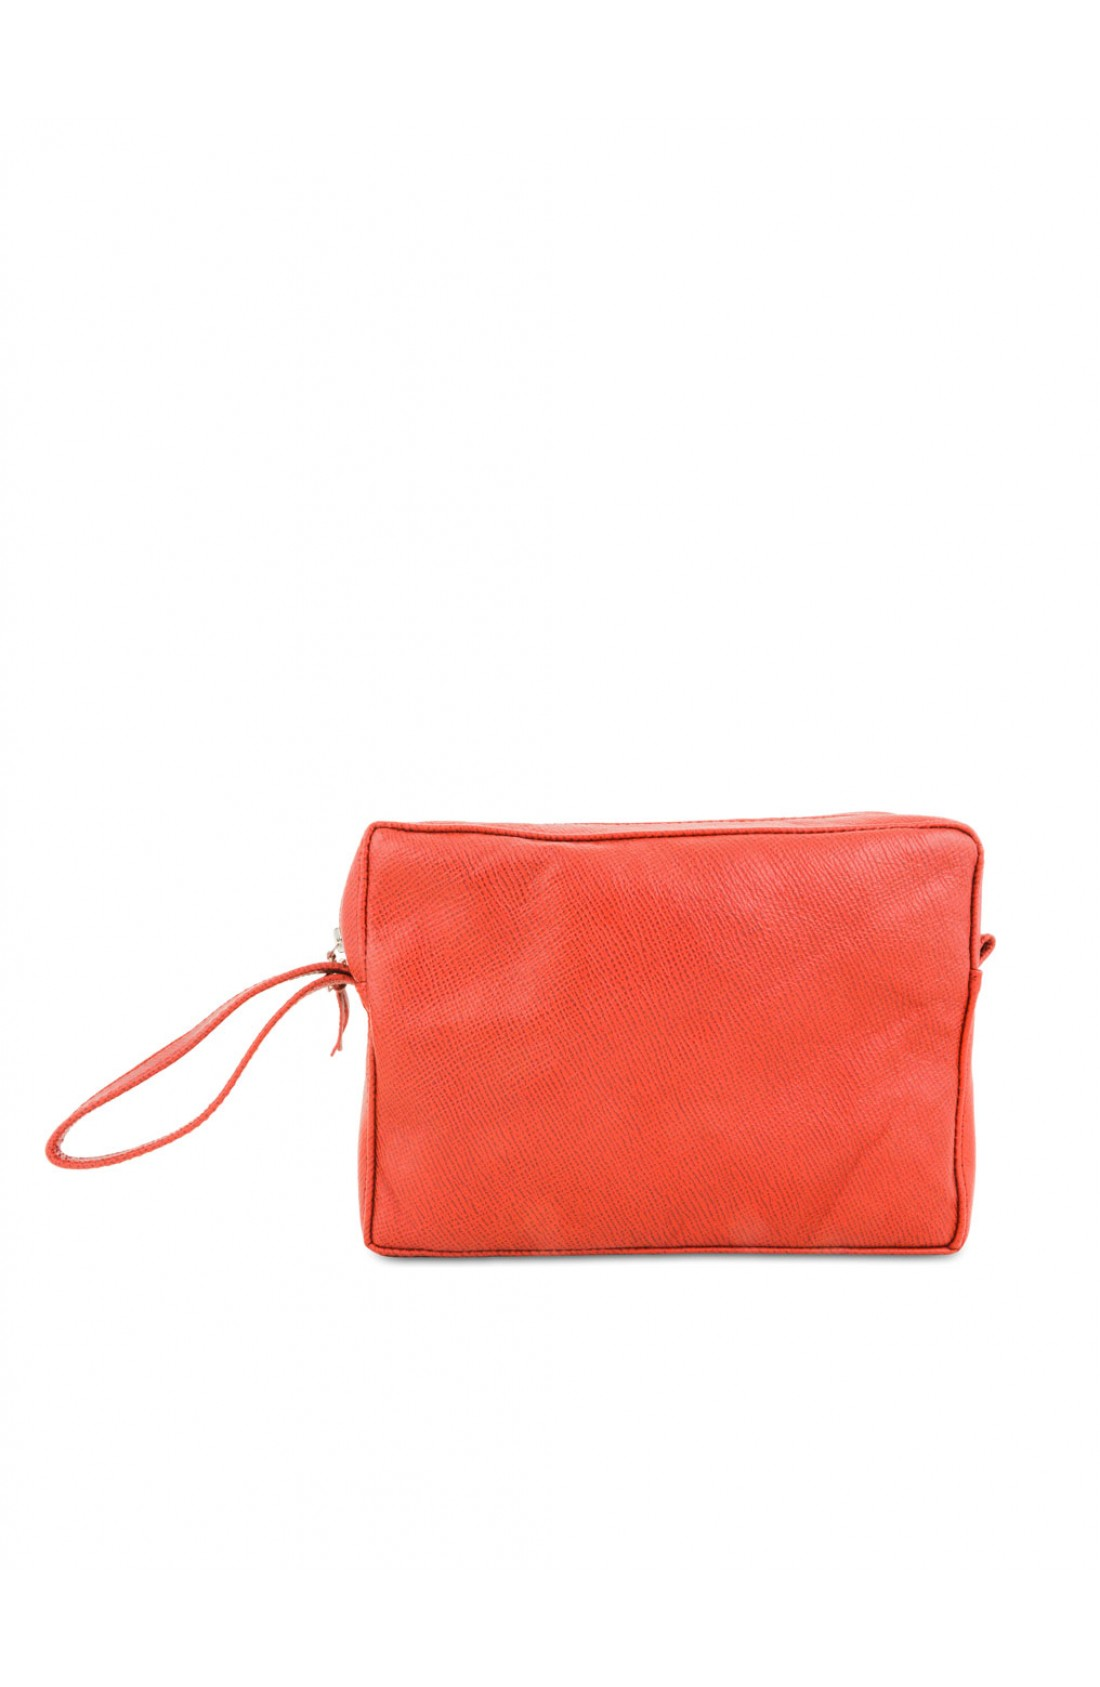 Borsa in pelle peach red